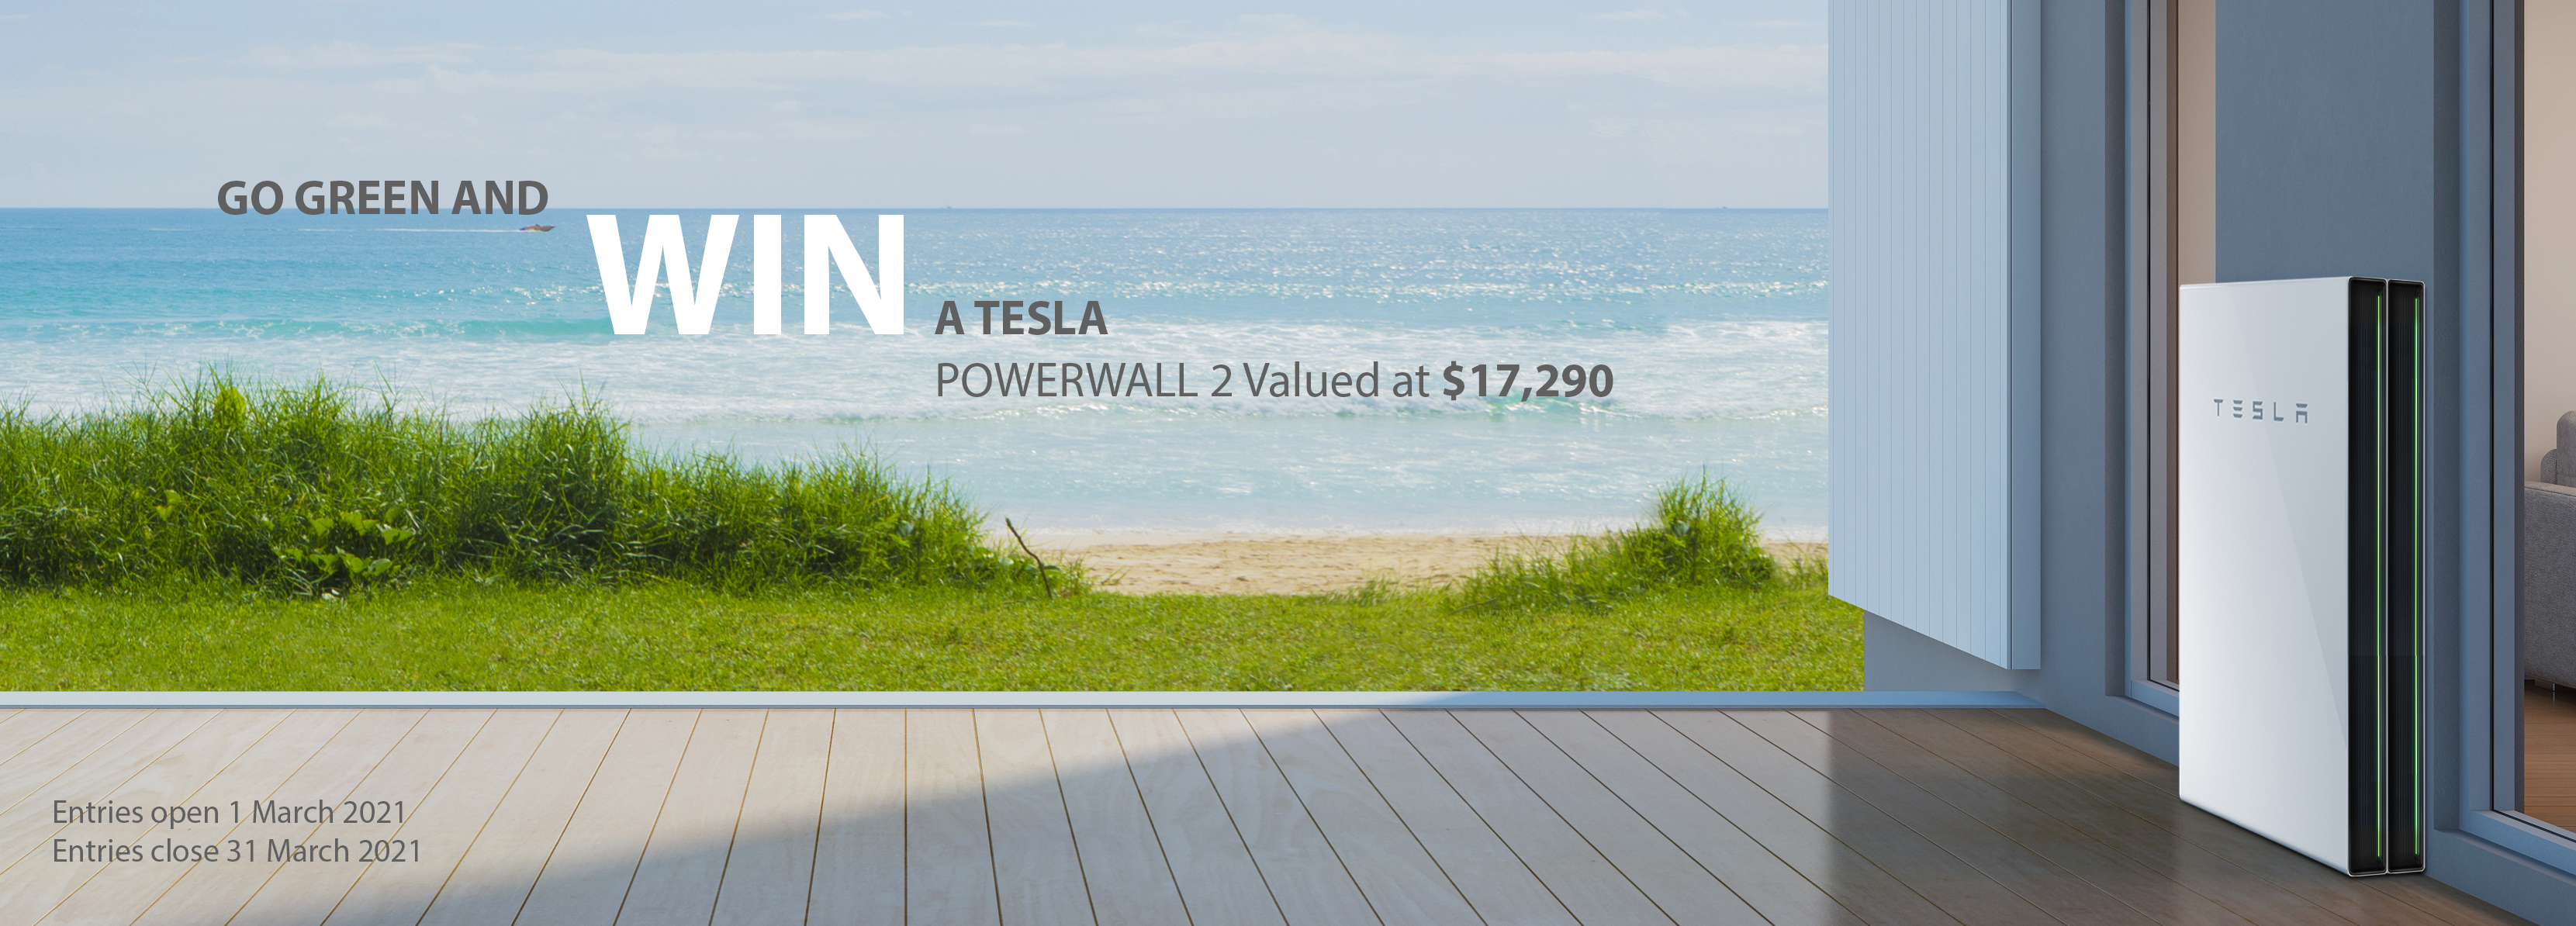 Tesla offer promo banner with an image of sea on a sunny day